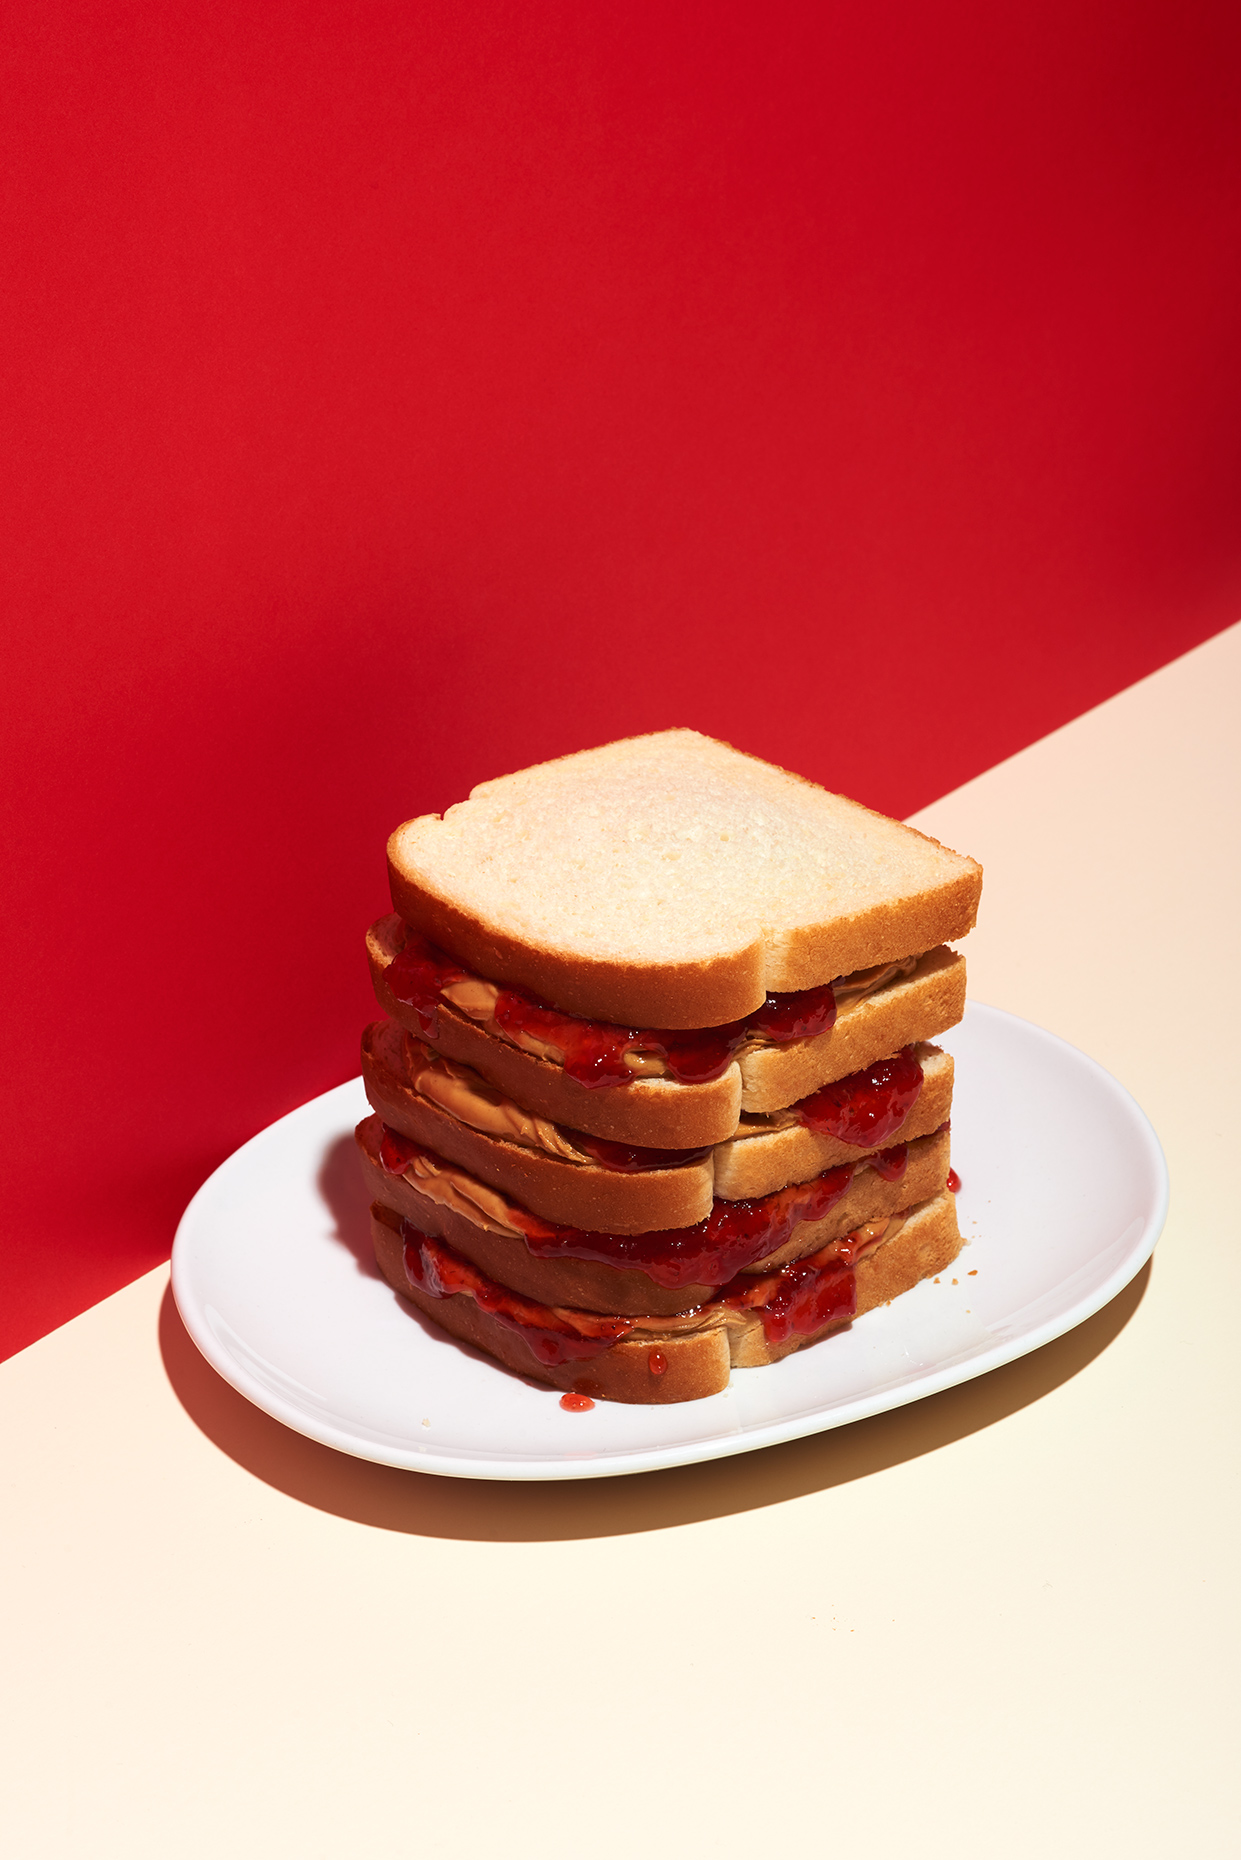 Peanut Butter & Jelly Sandwich on red and white, photographed by New York Food Photographer Adrian Mueller